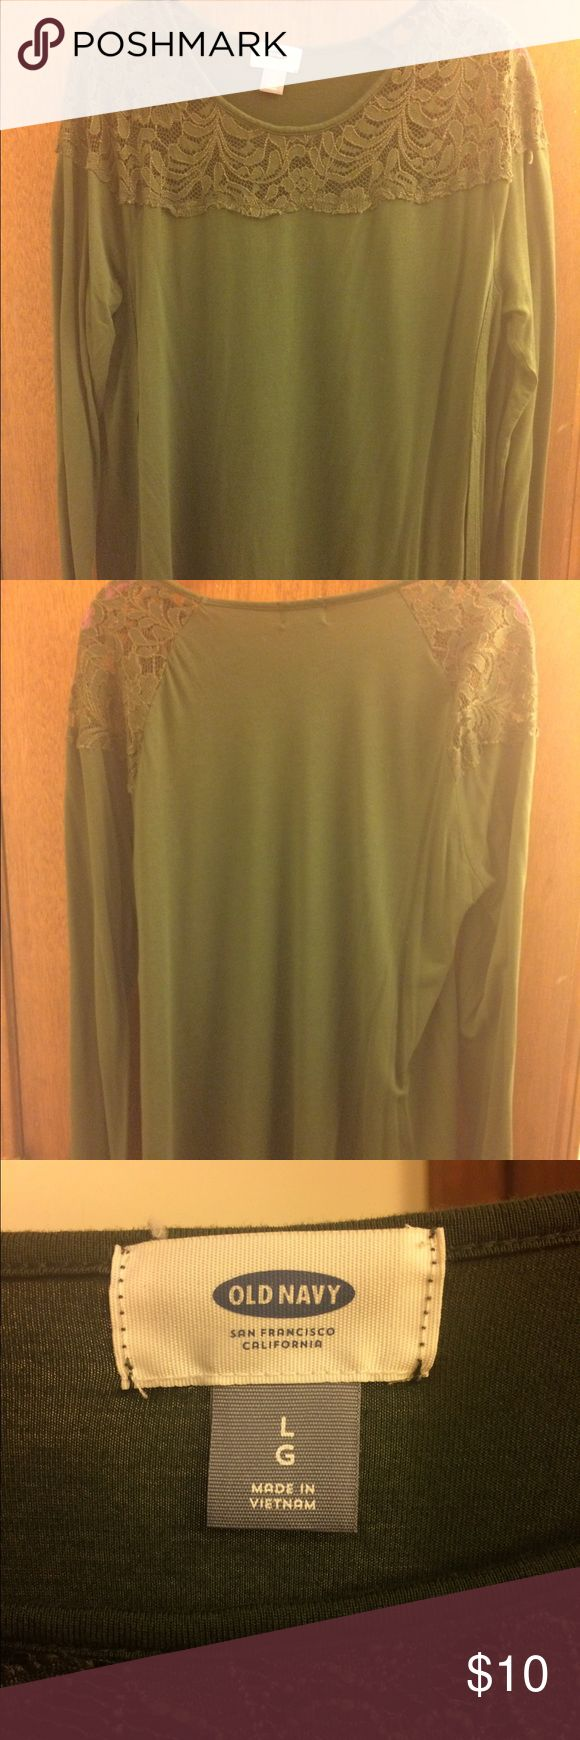 Old Navy long sleeve top Olive green old navy top, long sleeve. Lace along shoulders, with a slight split on side. Old Navy Tops Blouses